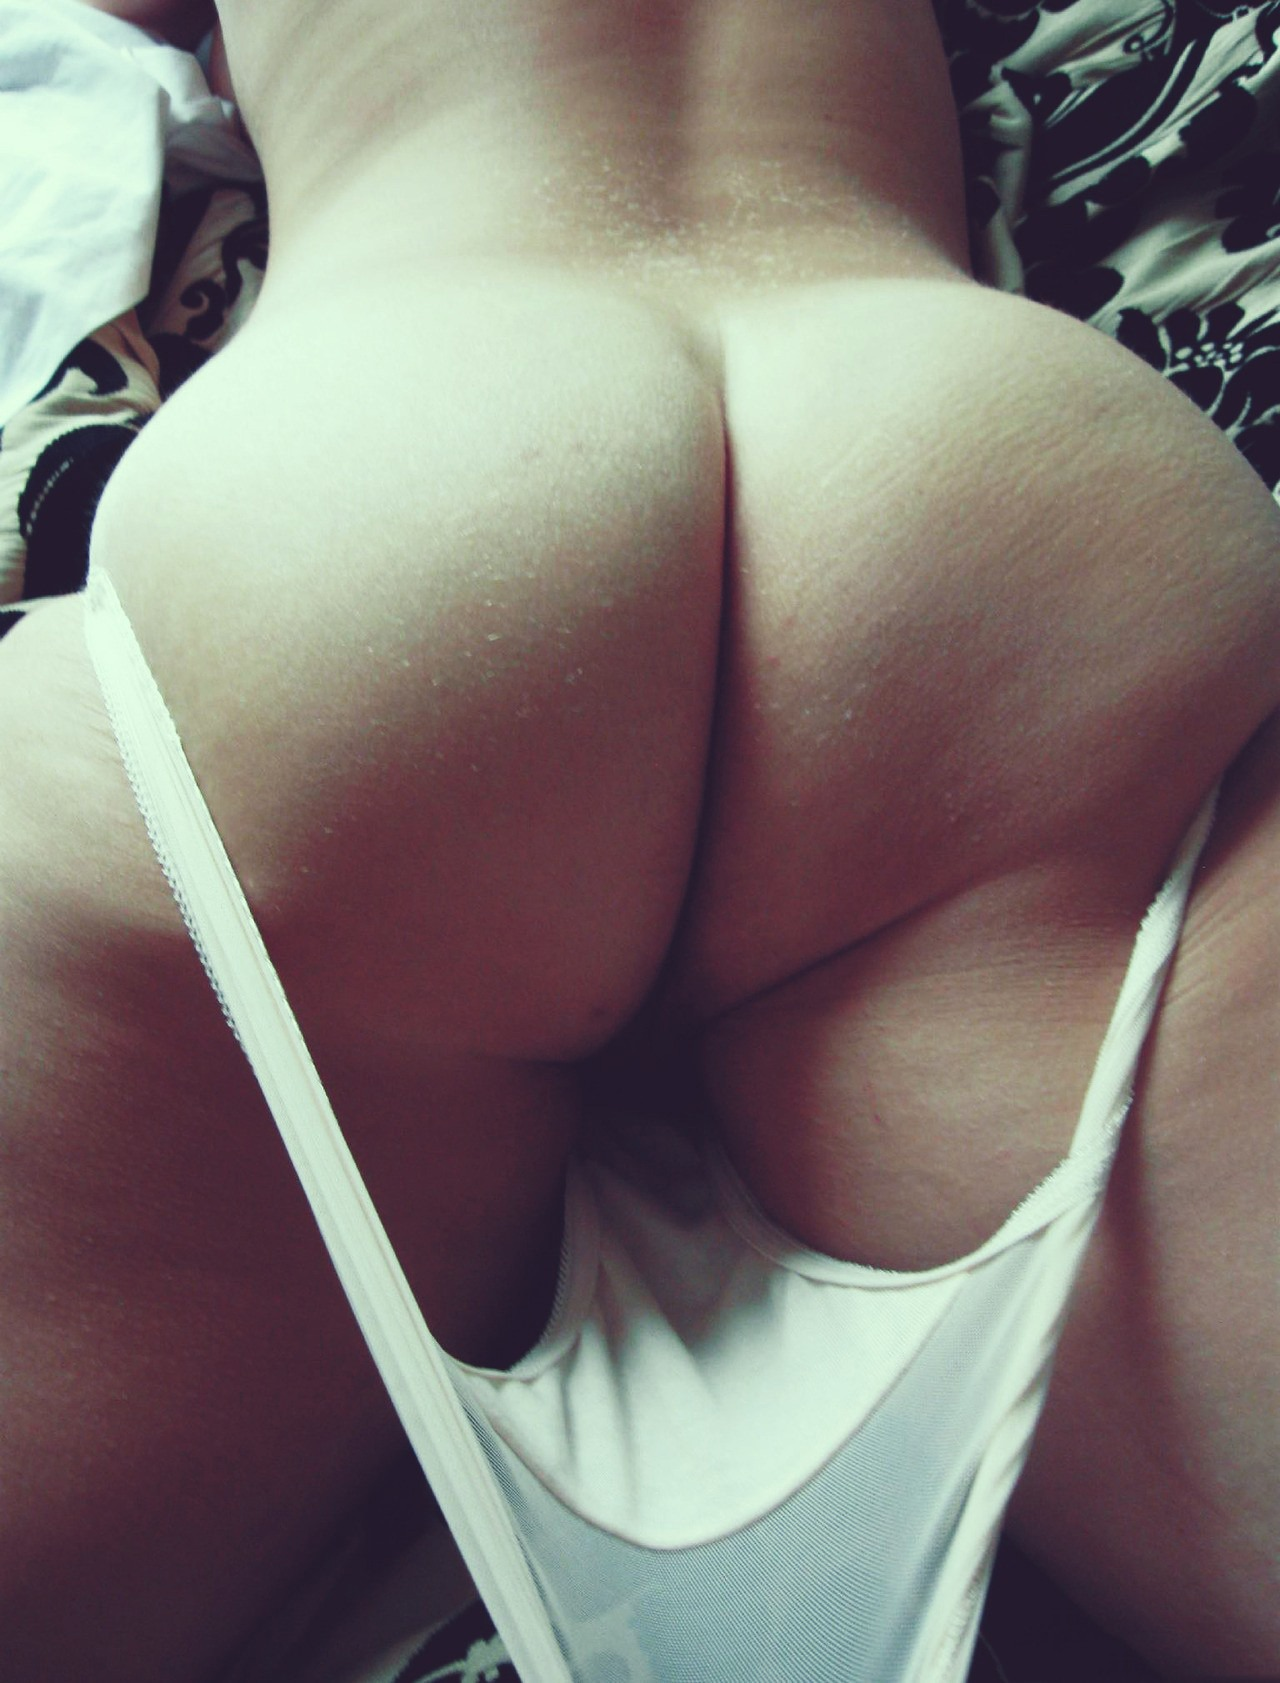 naked girls pussy wallpaper girly gif porn Ass, Ass, Attractive, Bigass, Bigbooty, Blonde, Booty, Dimepiece, Highheels, Hot, Hpsfav, Jellydevote, Leggings, Pawg, Sexy, Slut, Slutwear, Spandex, Stunna, Thick, Thickass, Thickwhitebooty, Thickwhitegirl, Thickwhitegirl, Thighs, Tights, Whitegirl, Yogapants